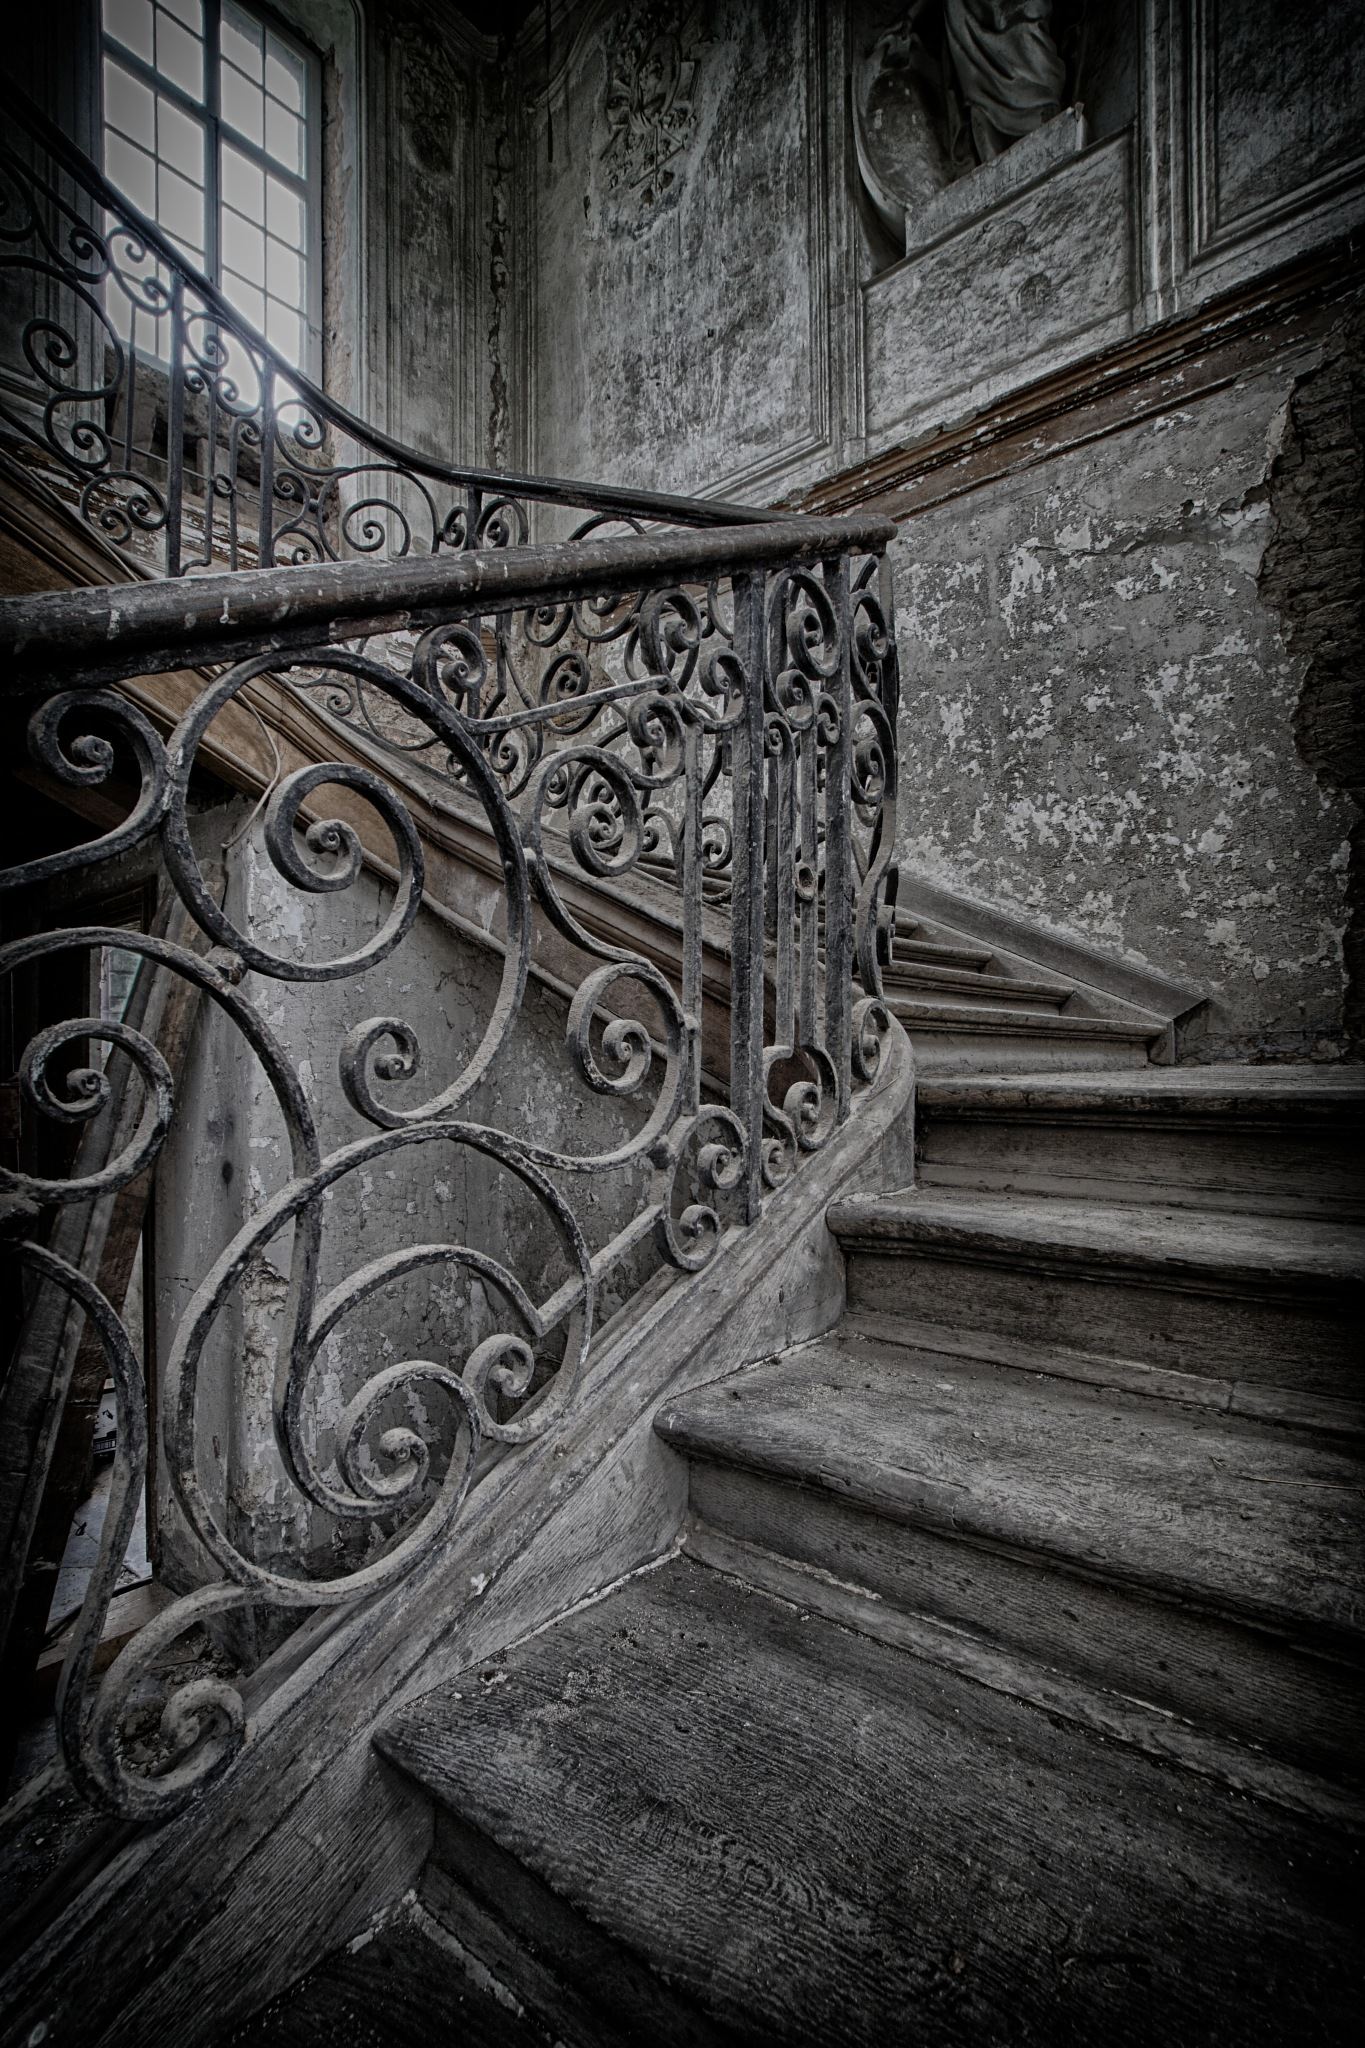 See you upstairs by Fred Kans